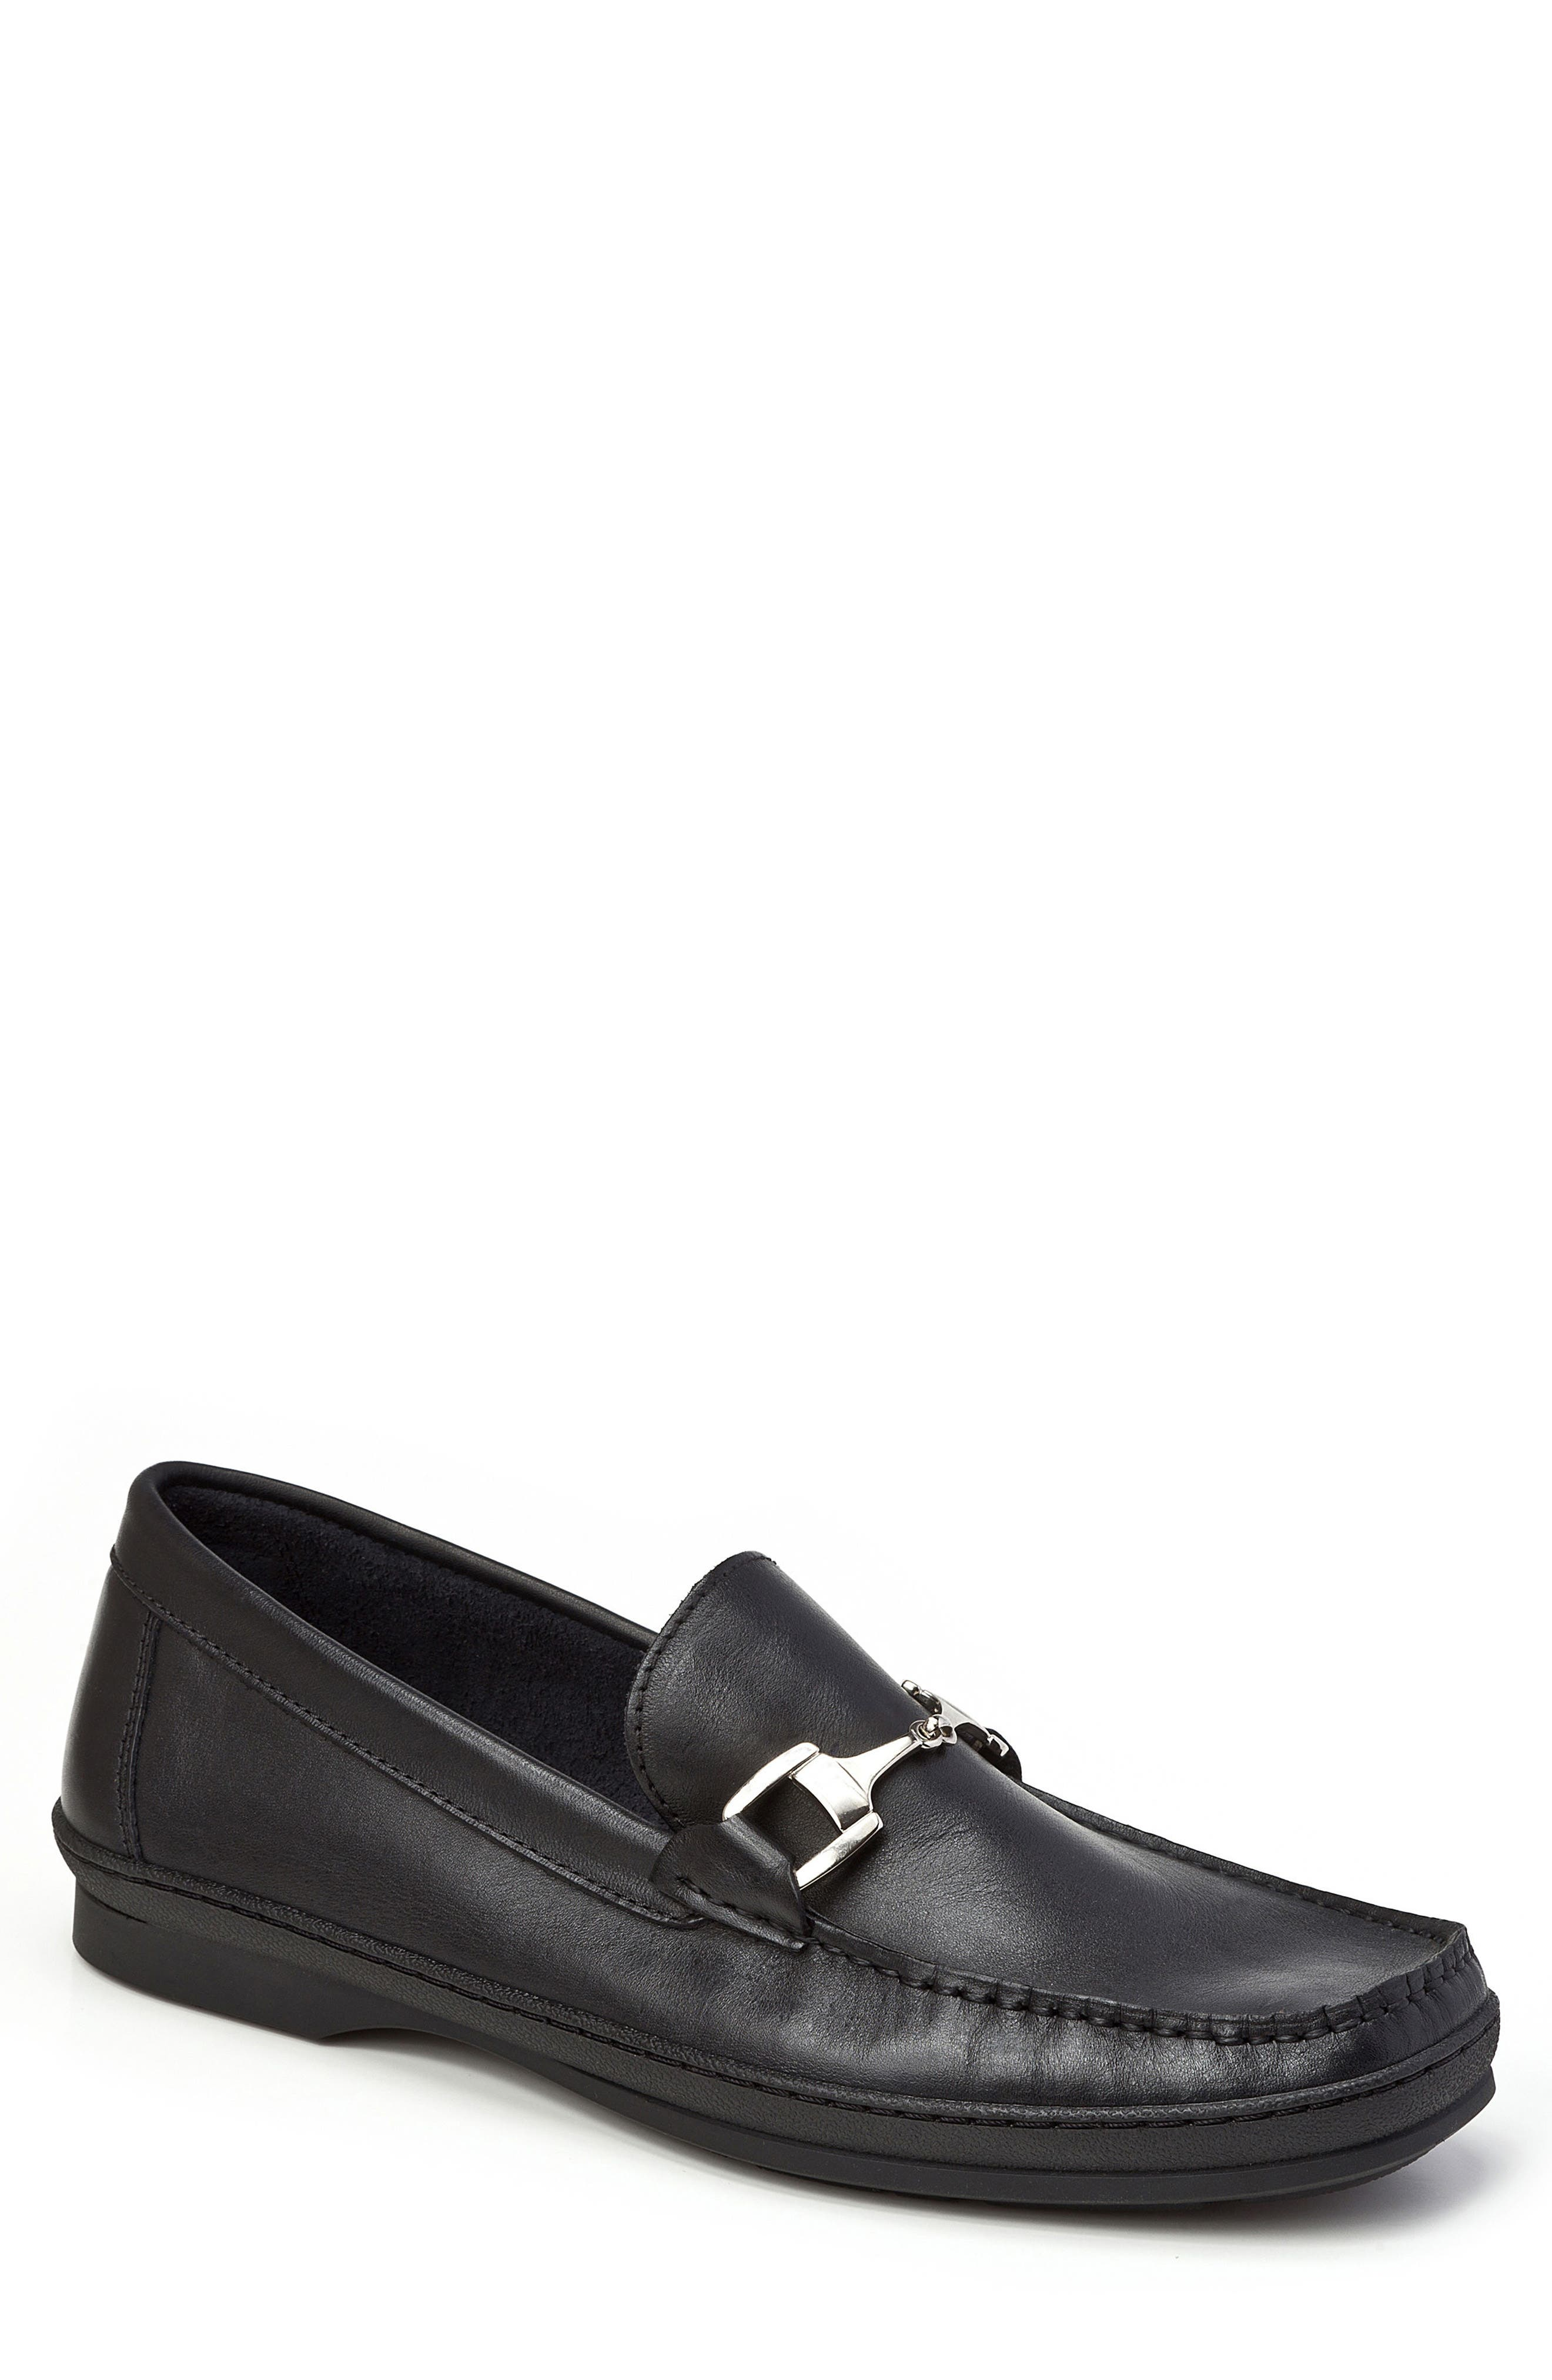 Navarro Bit Loafer,                         Main,                         color, 001